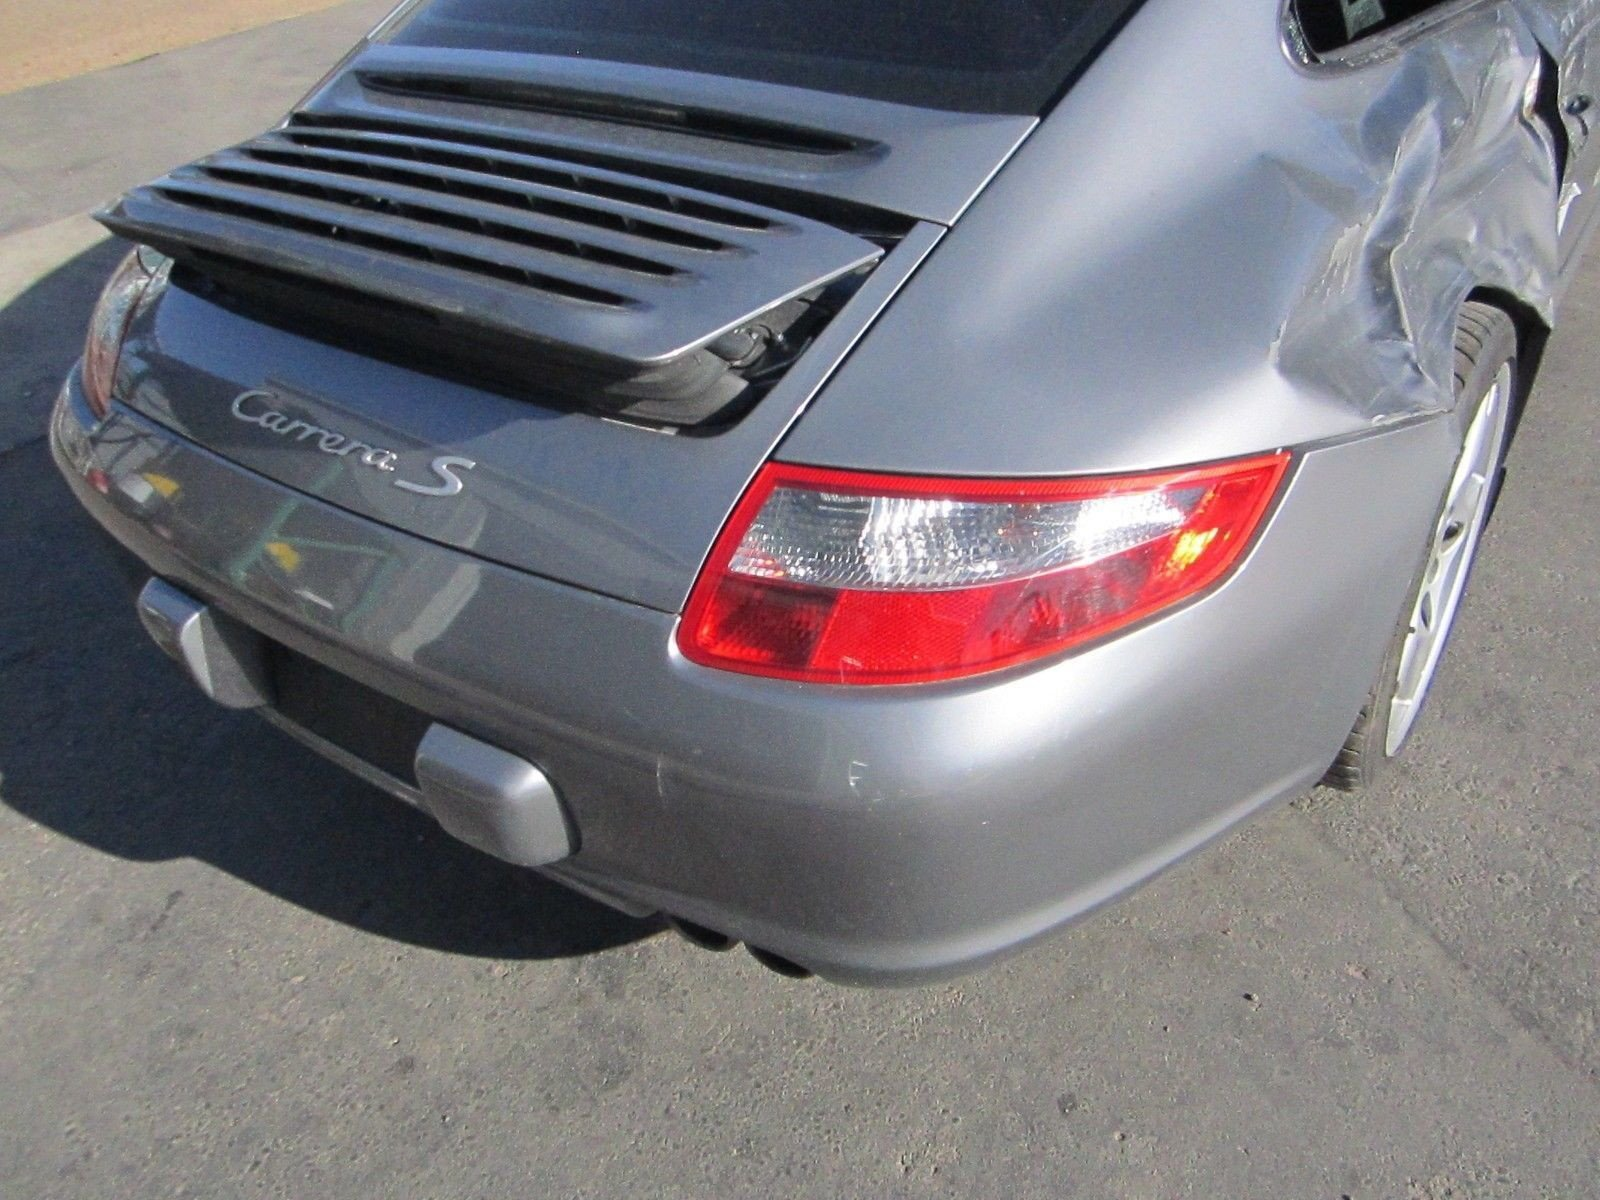 2005 Carrera S RWD Porsche 911 05 Coupe 997 Parting Out car parts 3.8 6s 50,714